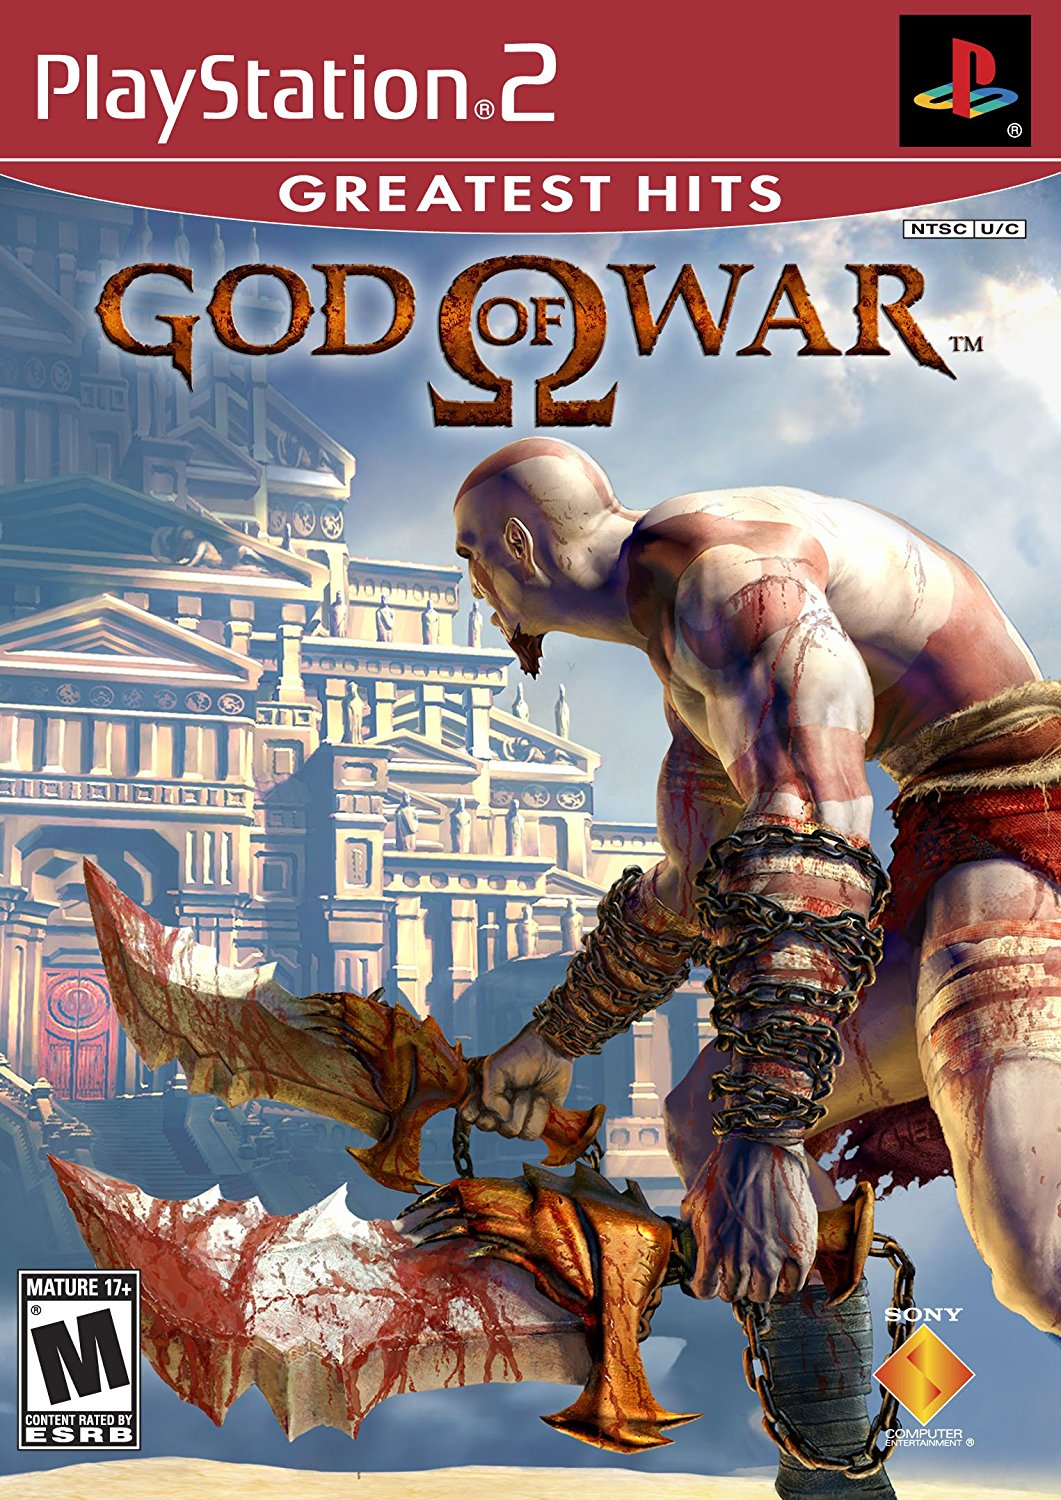 029: God of War (2005)